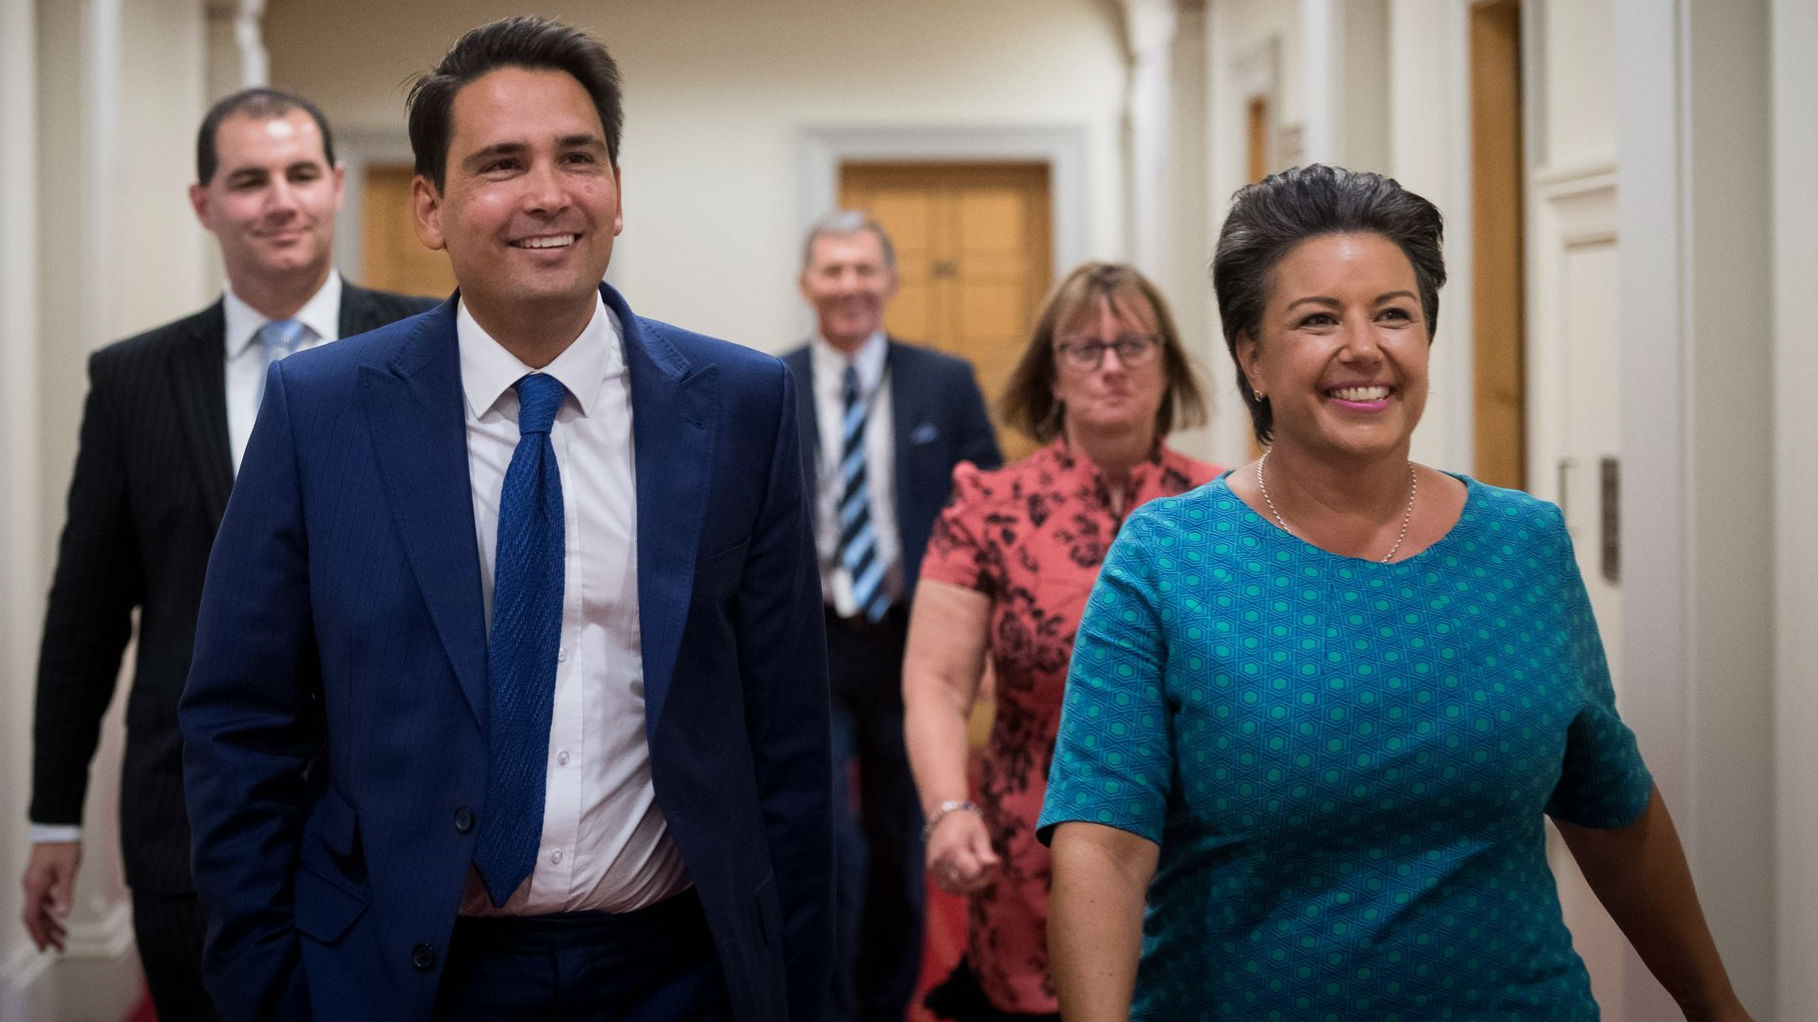 Simon Bridges and Paula Bennett were all smiles yesterday, but will they still be grinning in 2020? (Photo / NZ Herald)